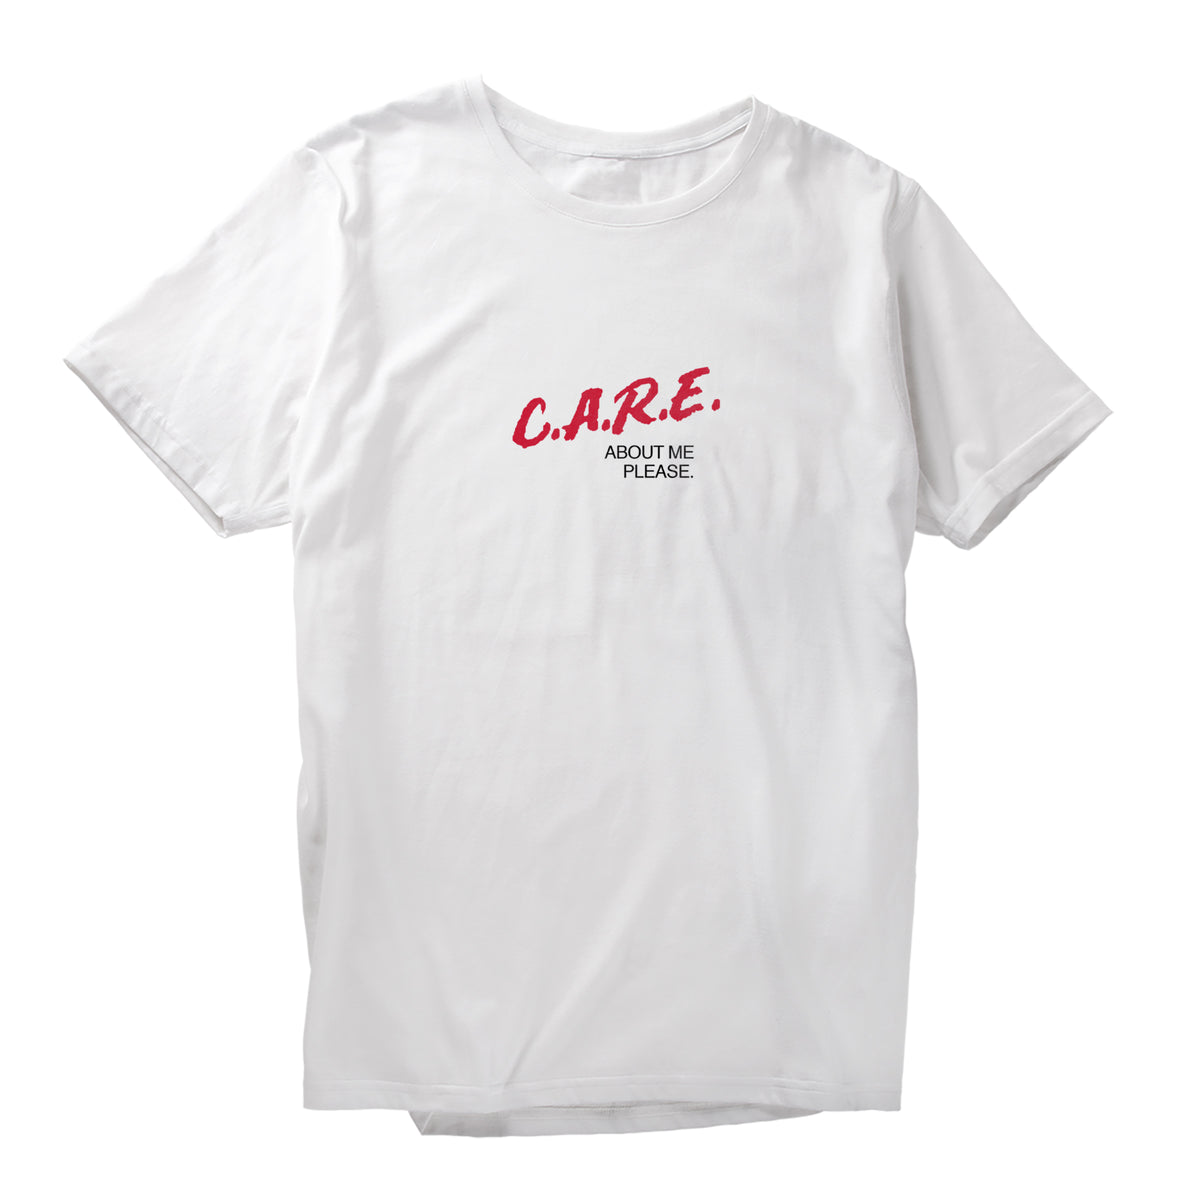 Care About Me T-Shirt